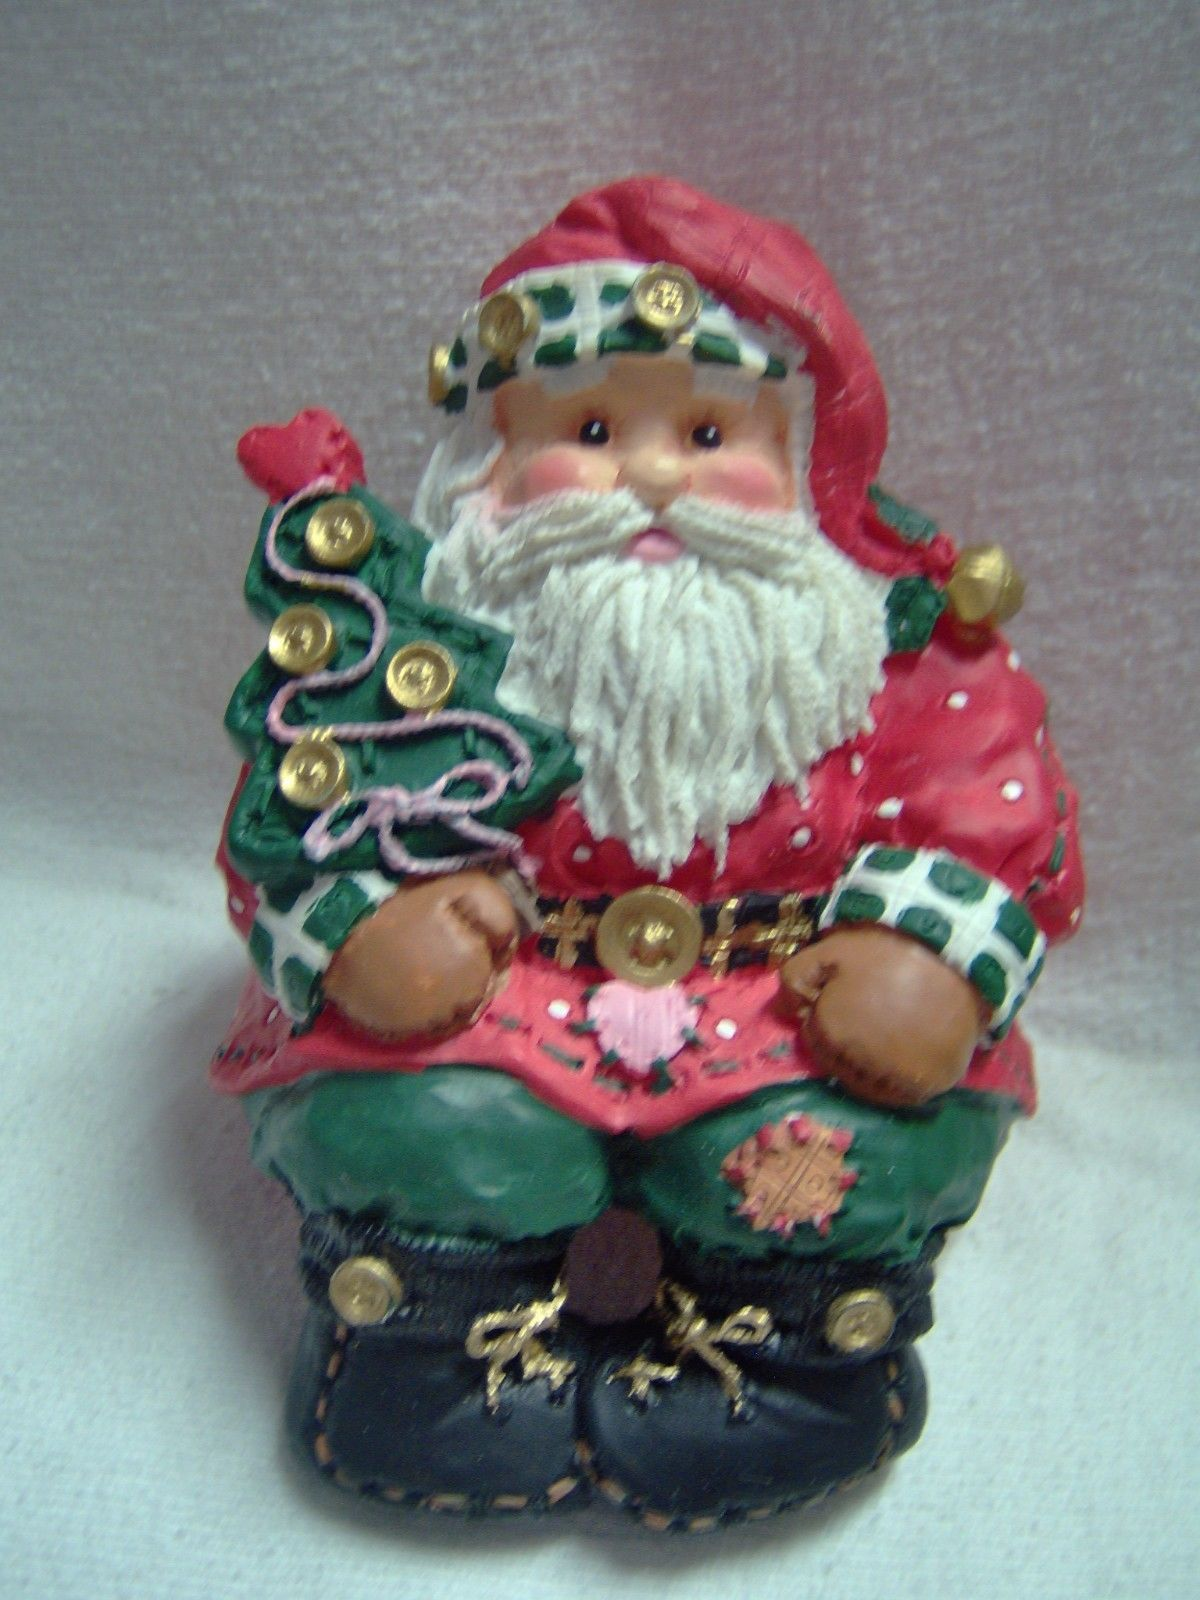 Musical Santa Claus Sitter, The San Francisco Music Box Company